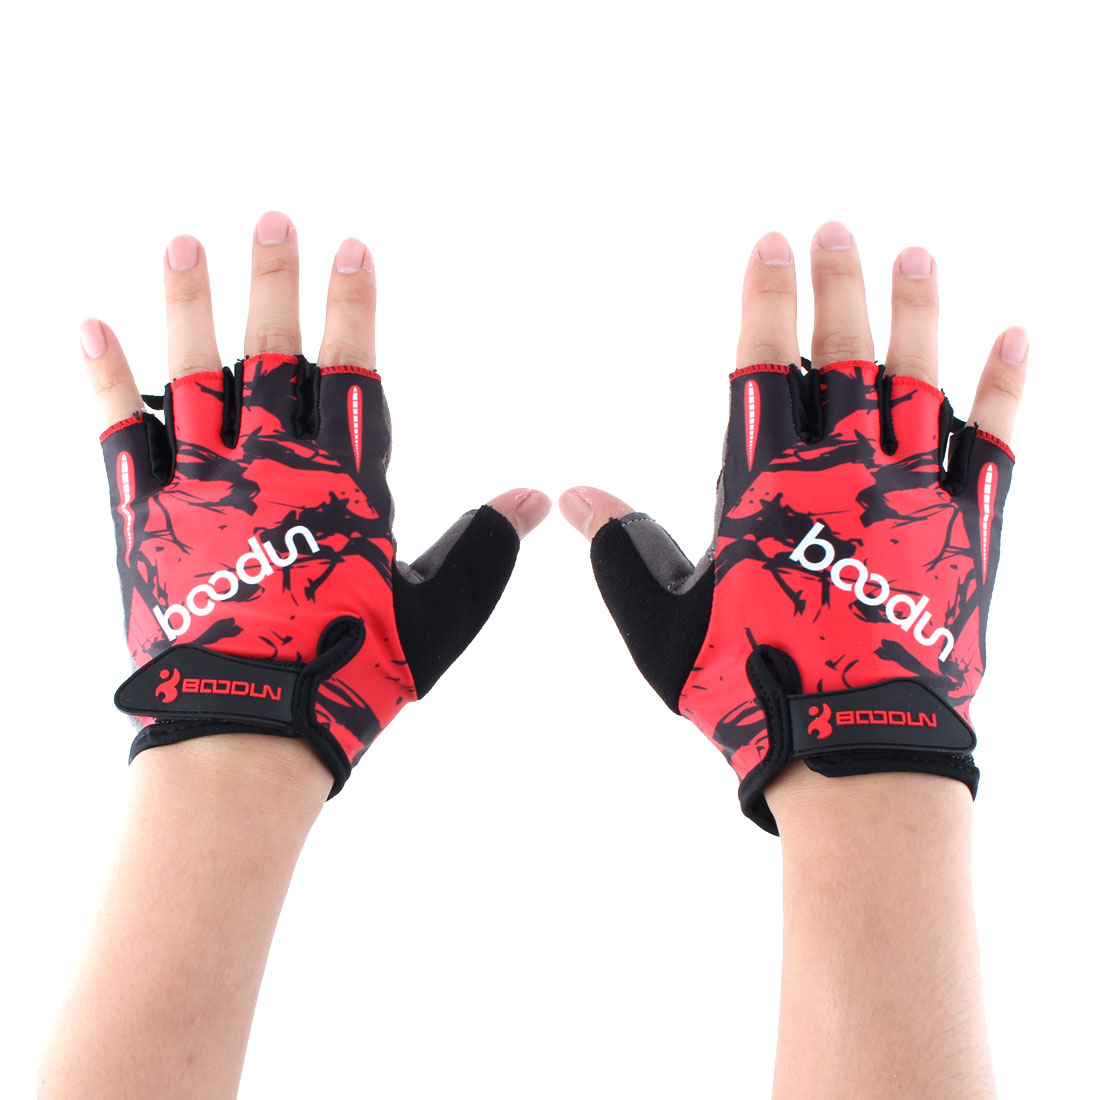 BOODUN Authorized Polyester Exercise Sports Gym Lifting Training Building Protector Half Finger Fitness Gloves Red M Pair